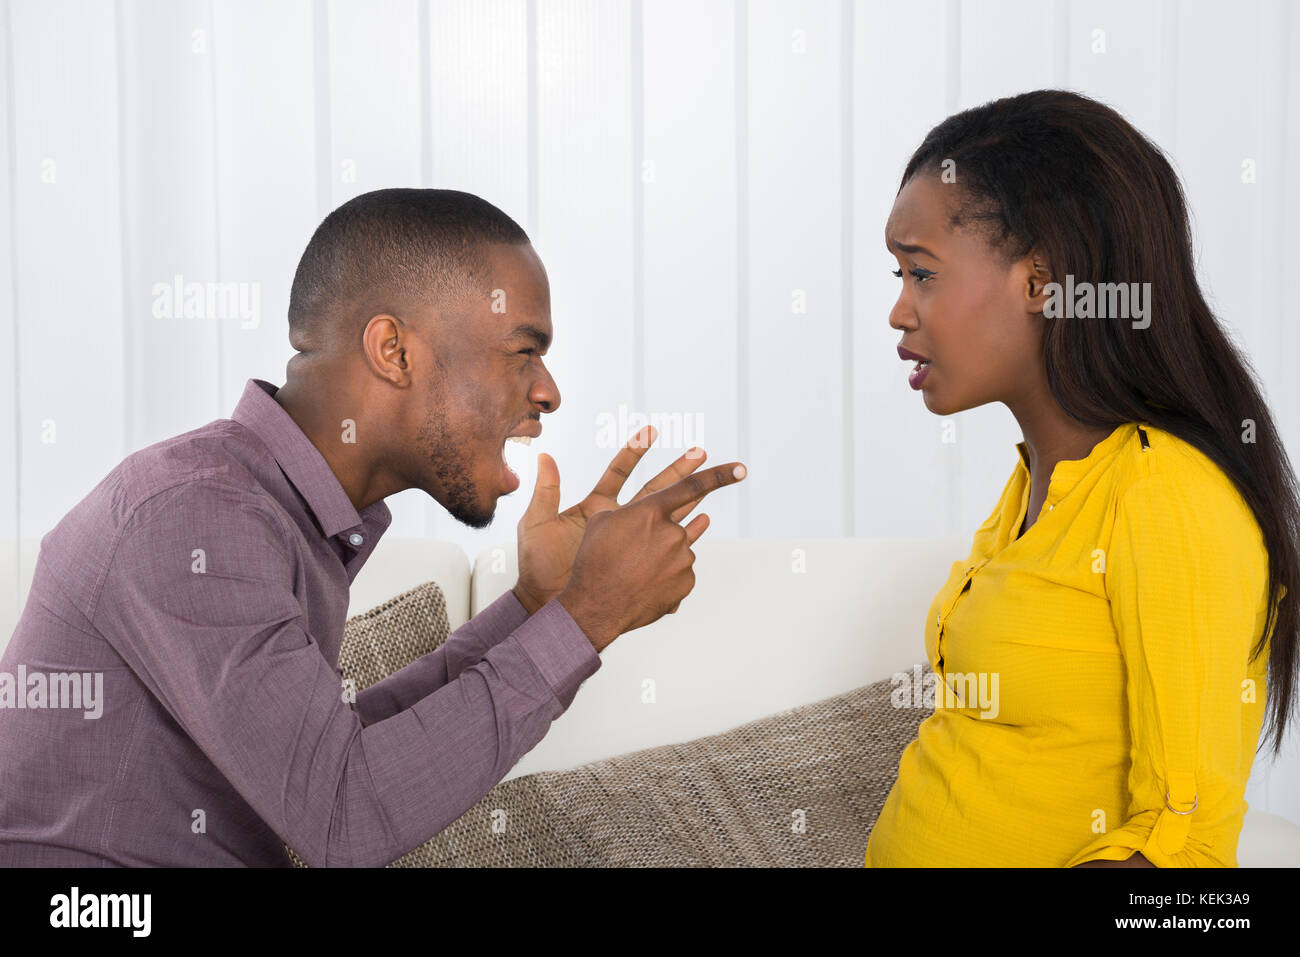 Angry Young African man screaming at woman Photo Stock